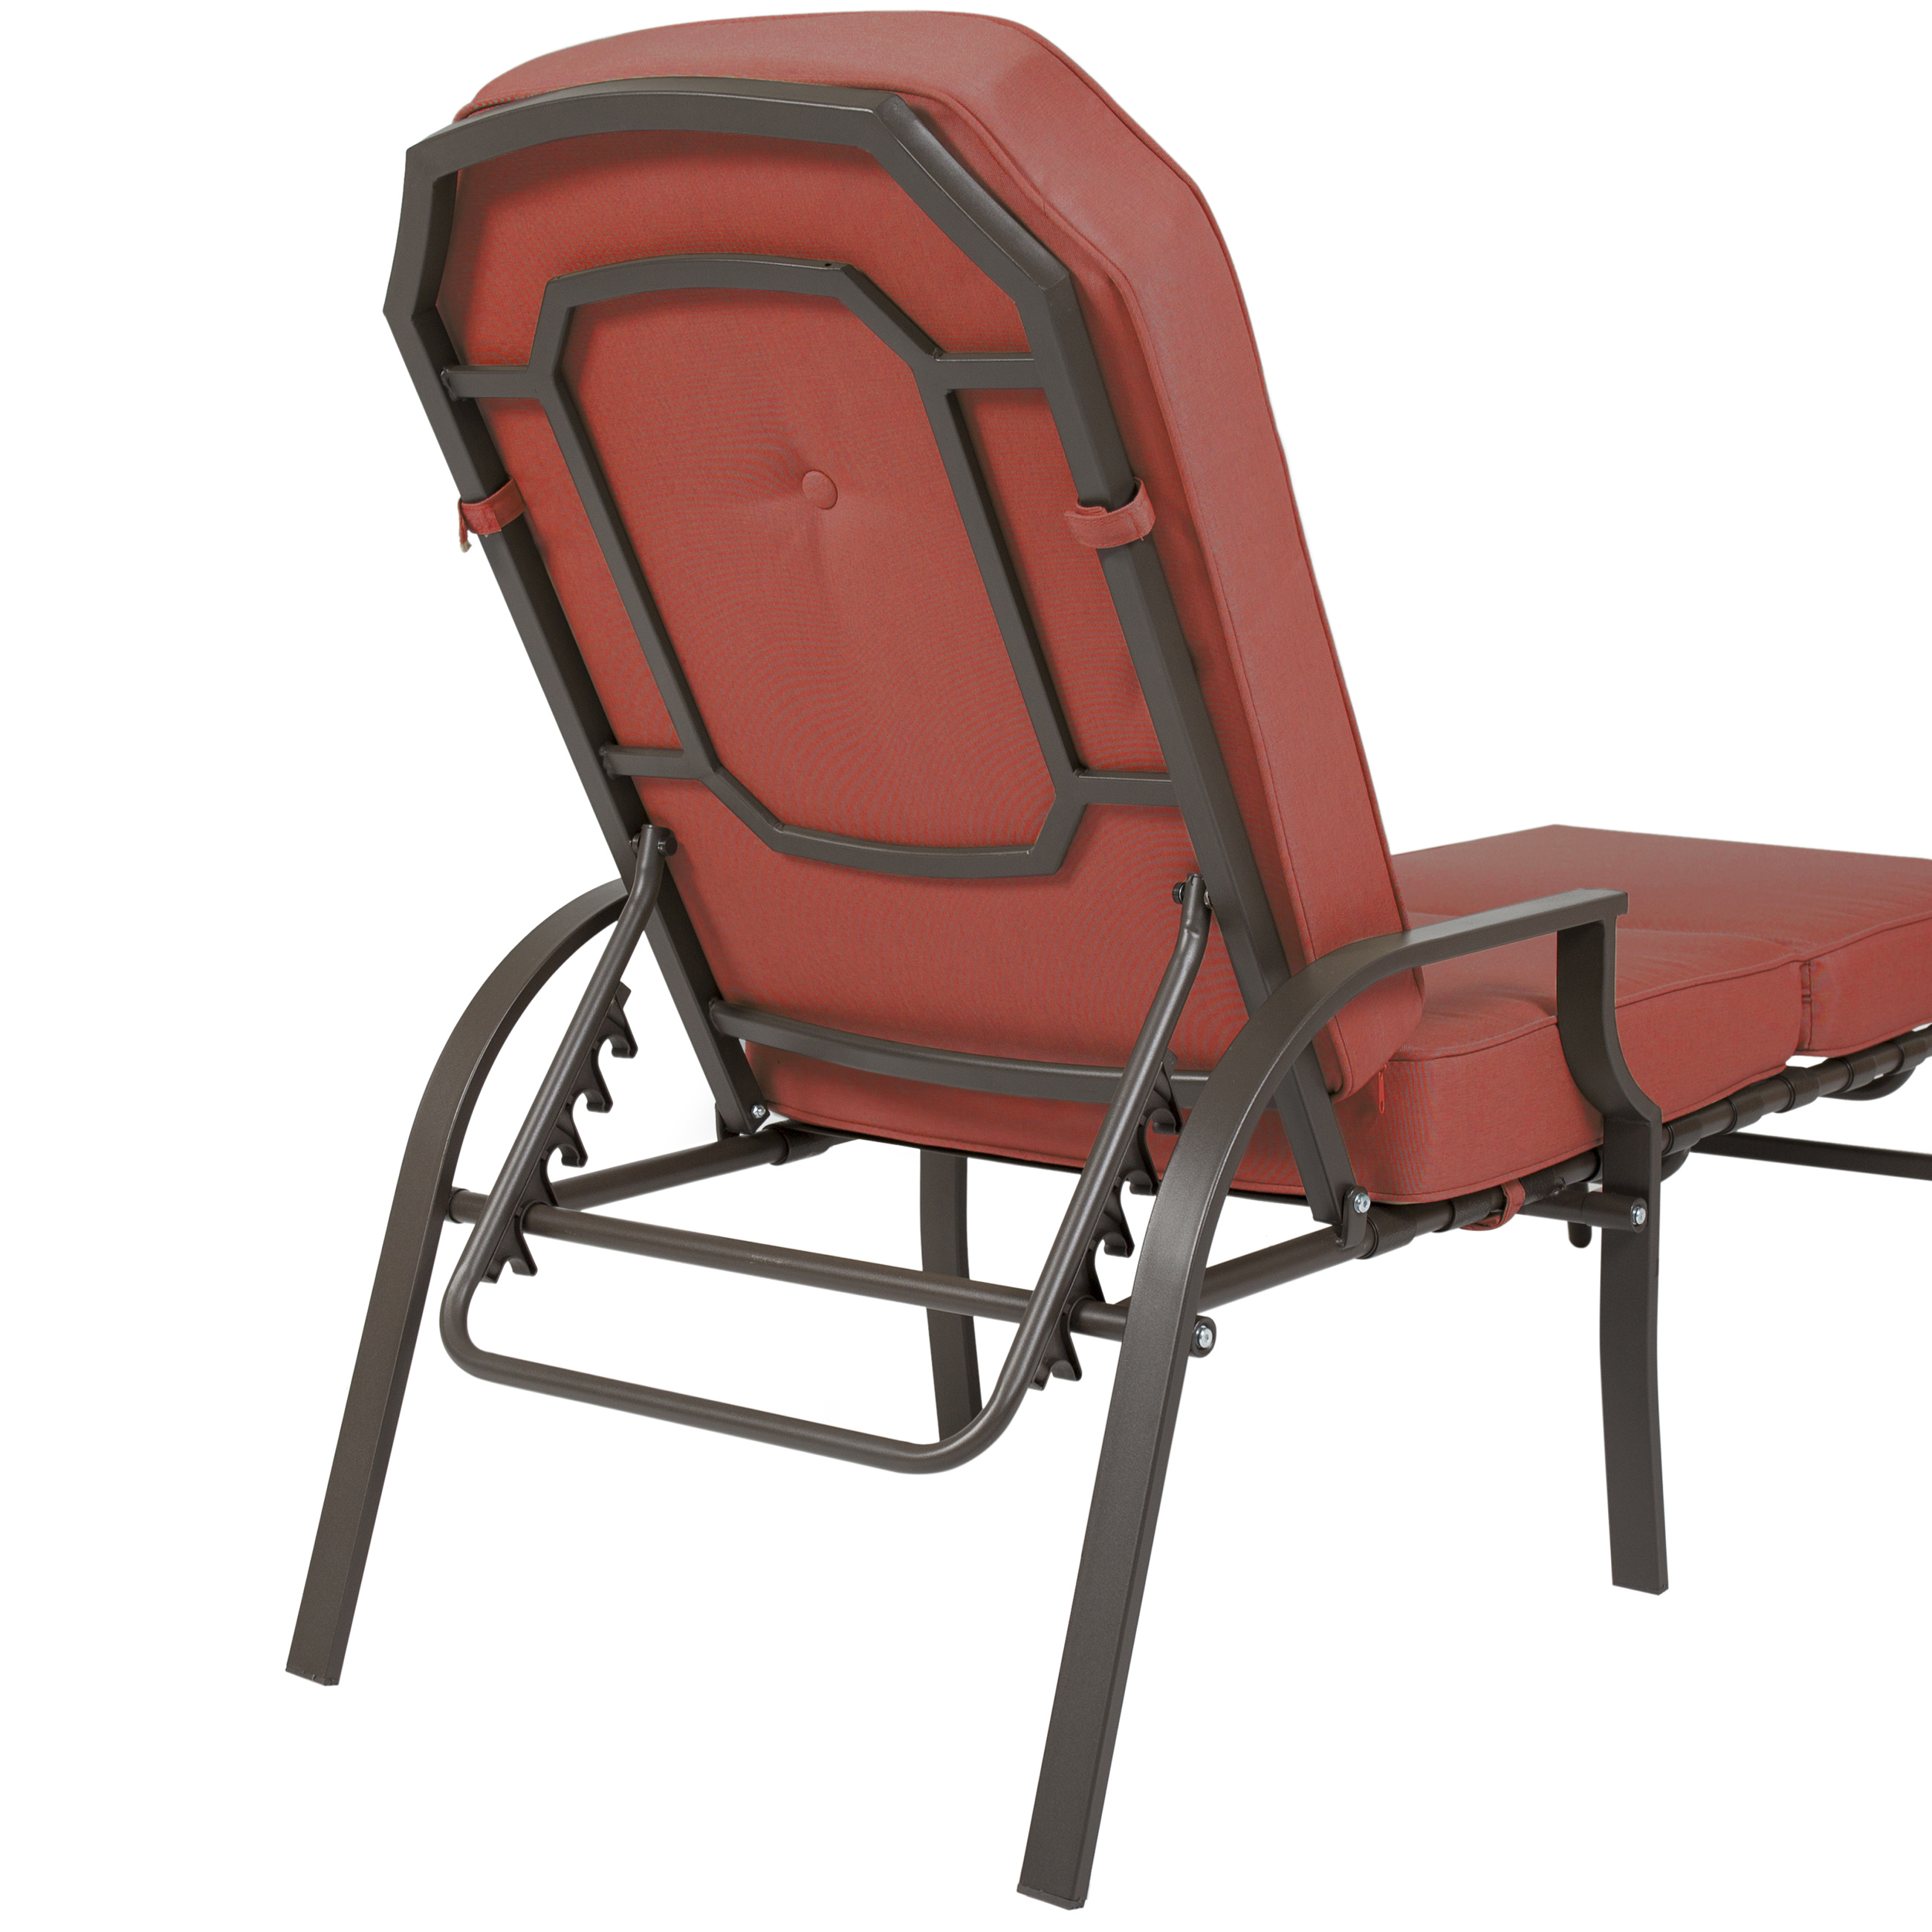 Best Choice Products Outdoor Chaise Lounge Chair W/ Cushion Pool Patio  Furniture   Walmart.com